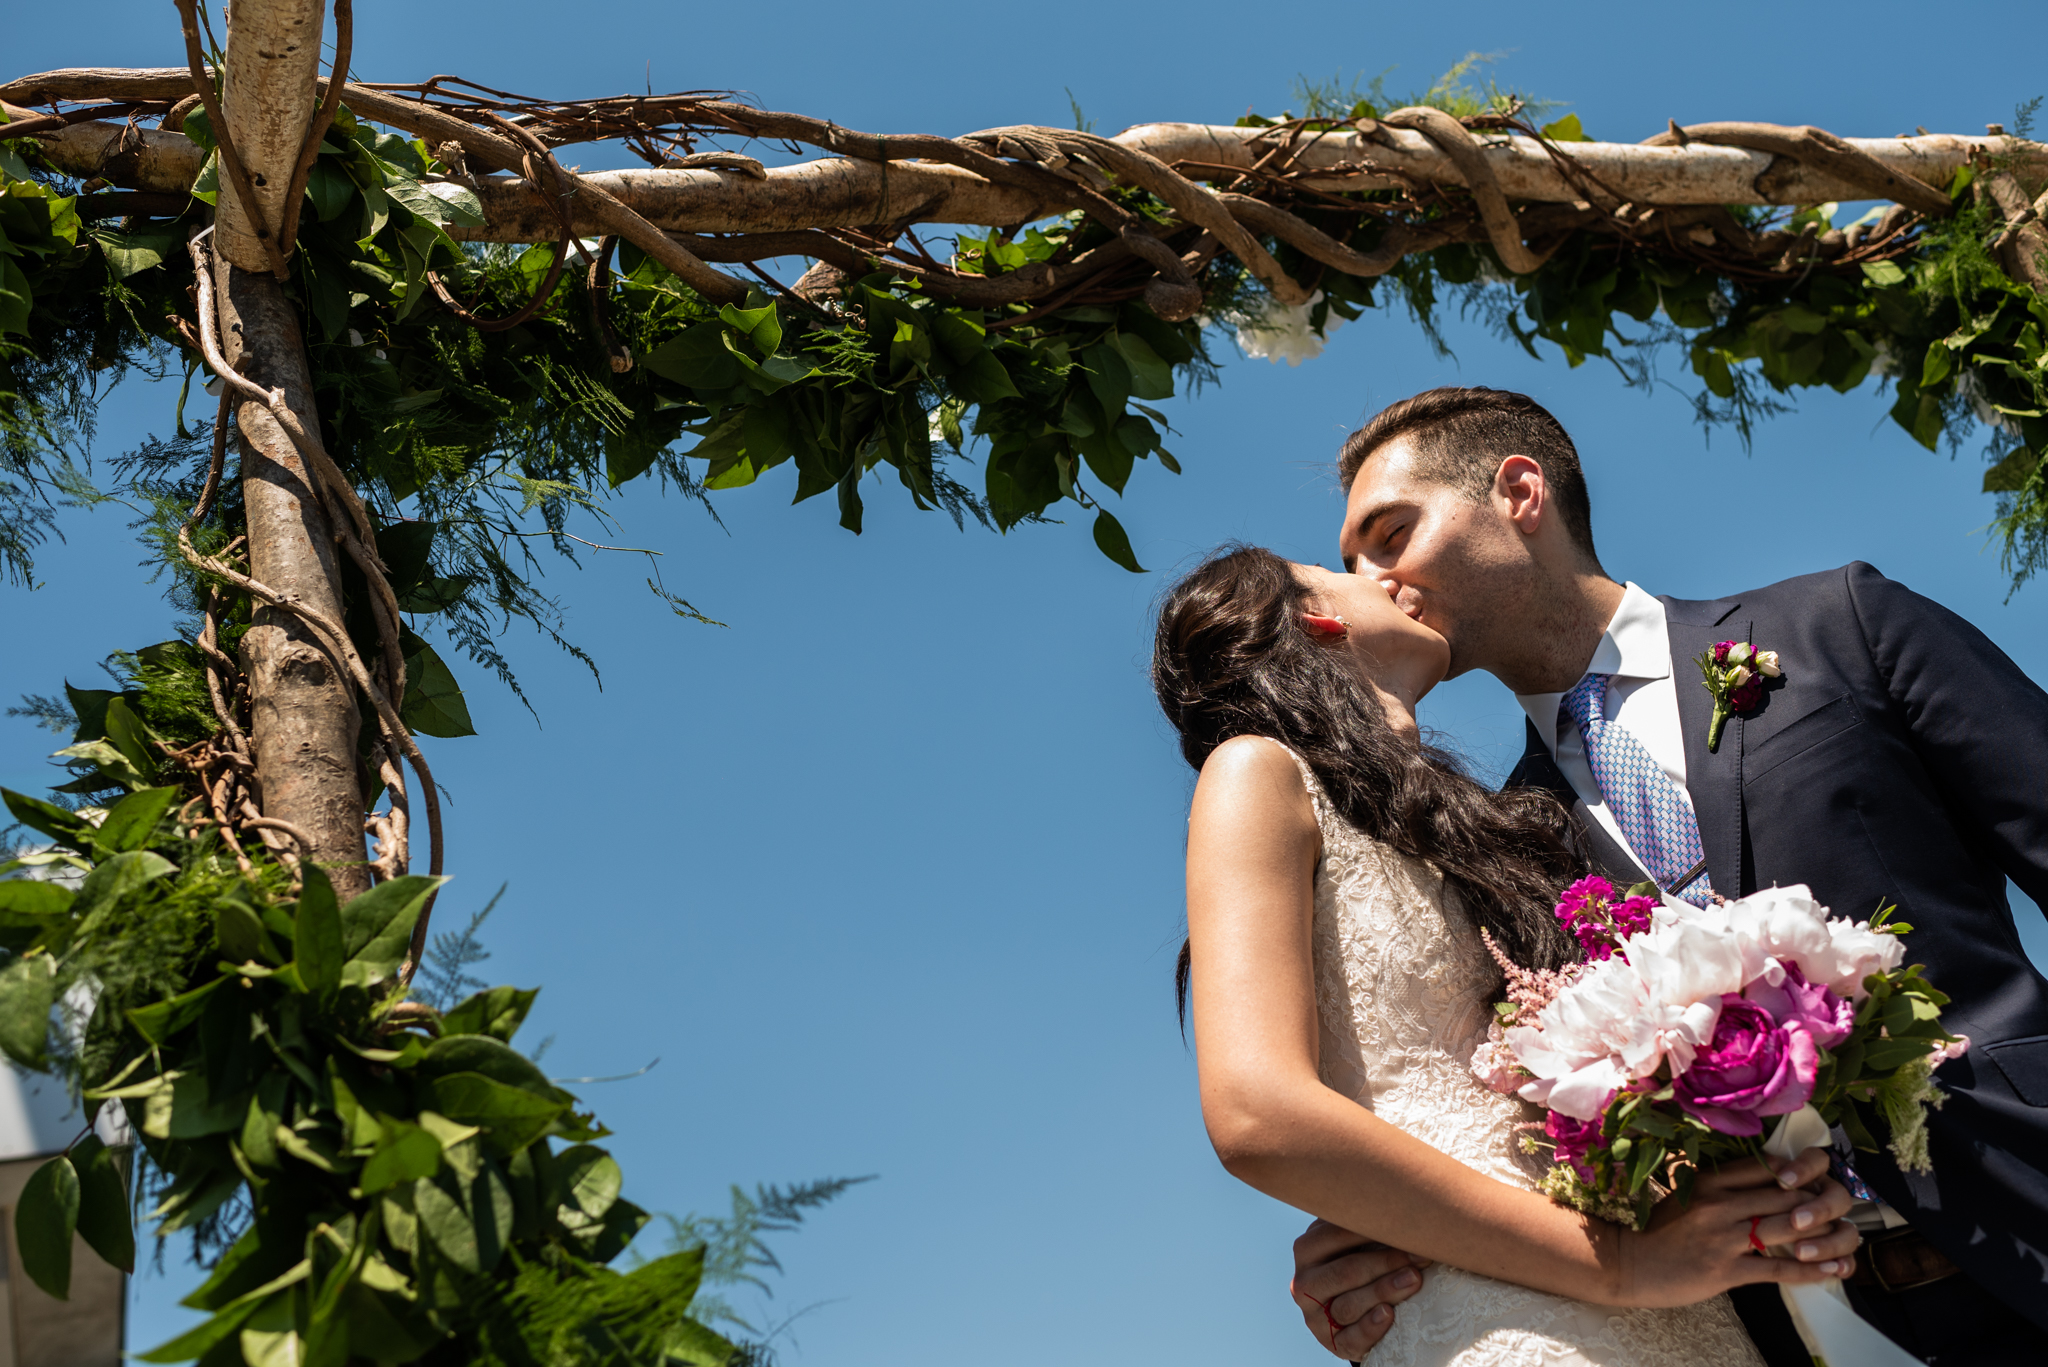 Saki & Zach's Wedding by Romina Hendlin-012.jpg